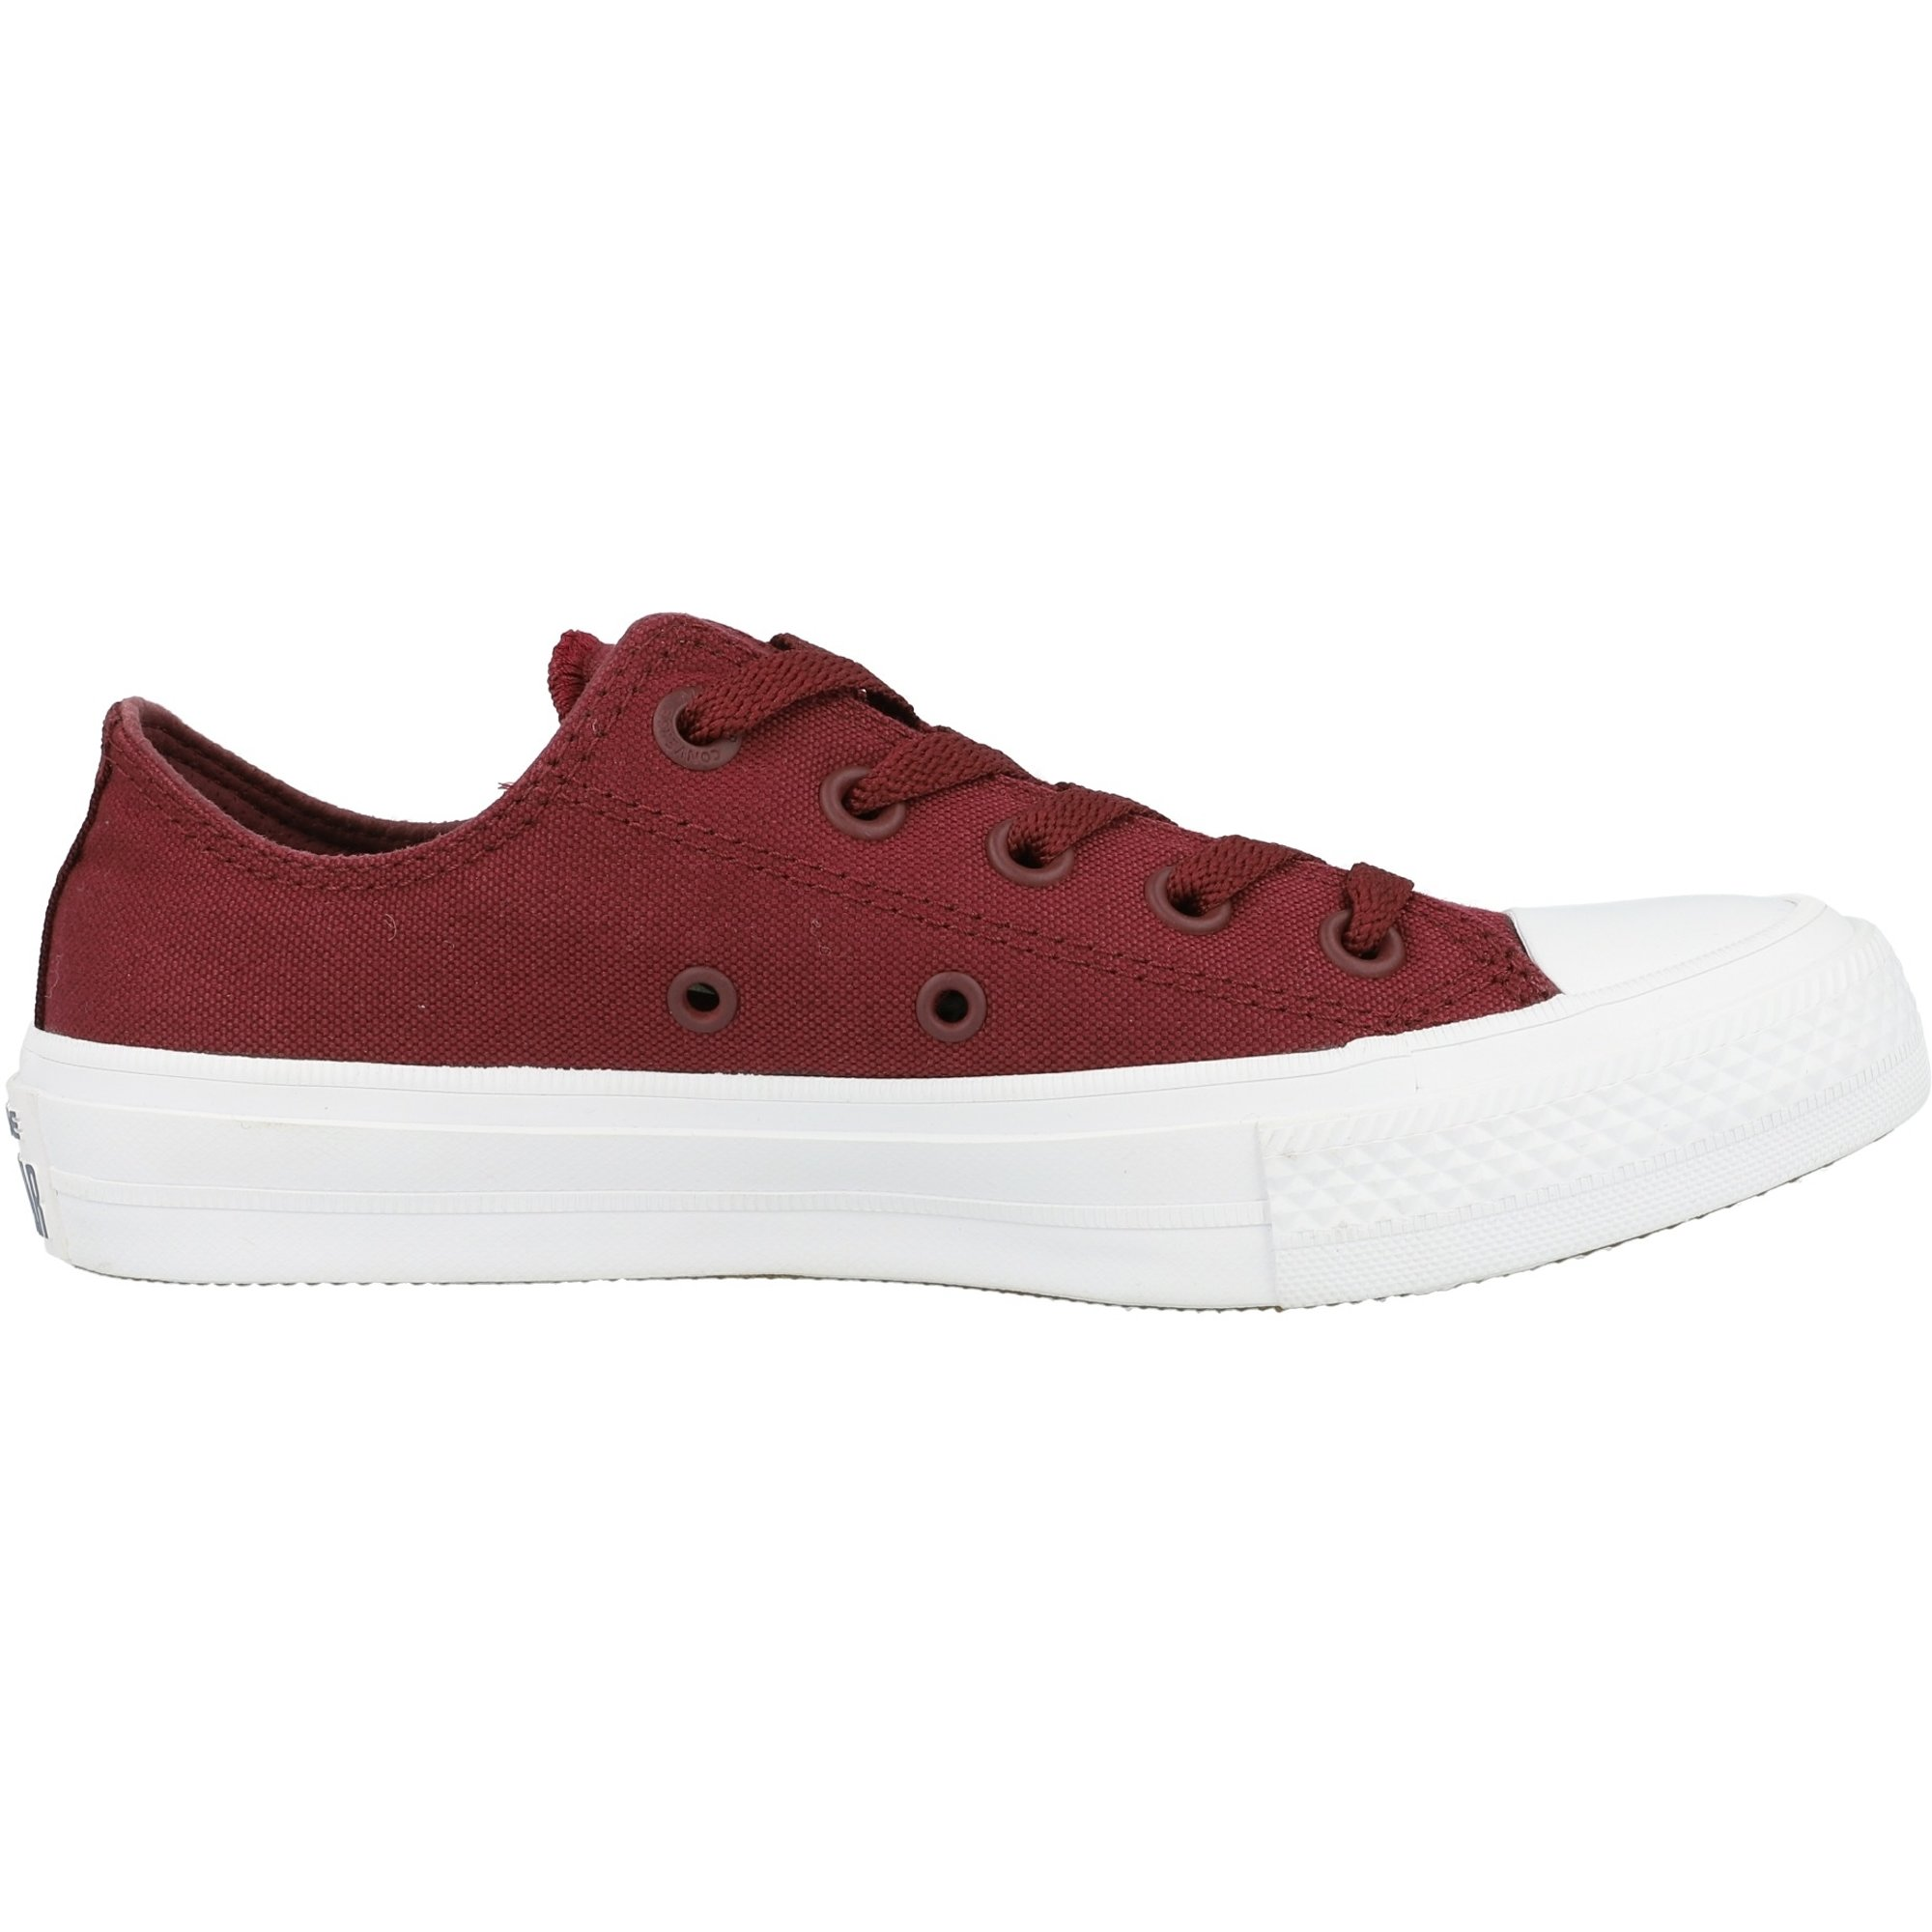 Converse Chuck Taylor All Star II Ox Bordeaux Textile